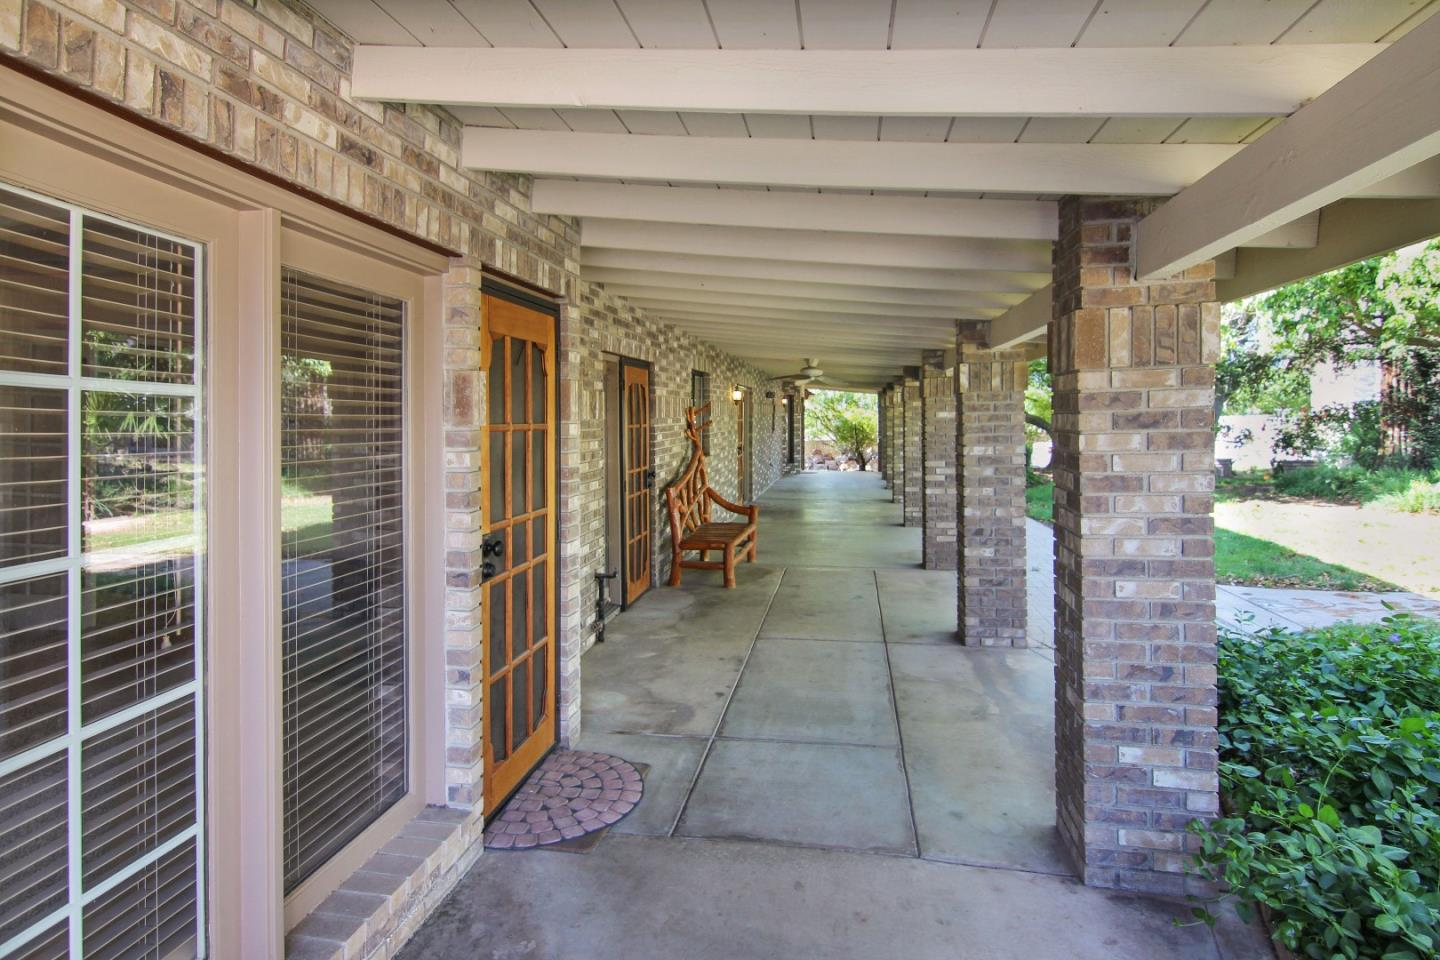 Additional photo for property listing at 14208 Road 36 14208 Road 36 Madera, Kalifornien 93636 Vereinigte Staaten